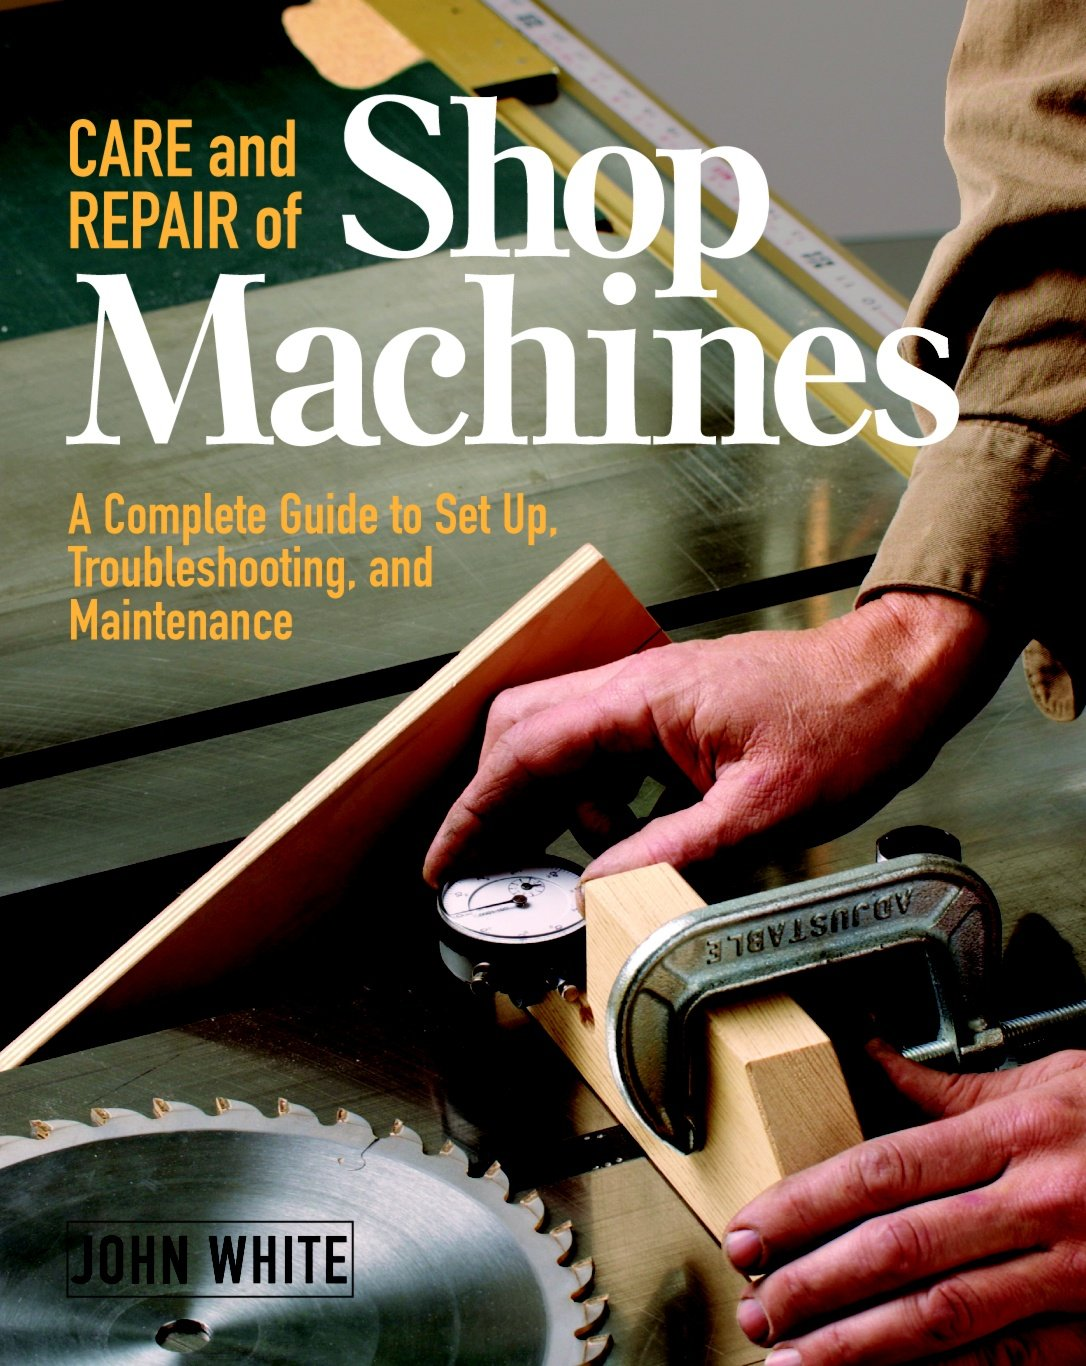 Care And Repair Of Shop Machines  A Complete Guide To Setup Troubleshooting And Ma  A Complete Guide To Setup Troubleshooting And Maintenance